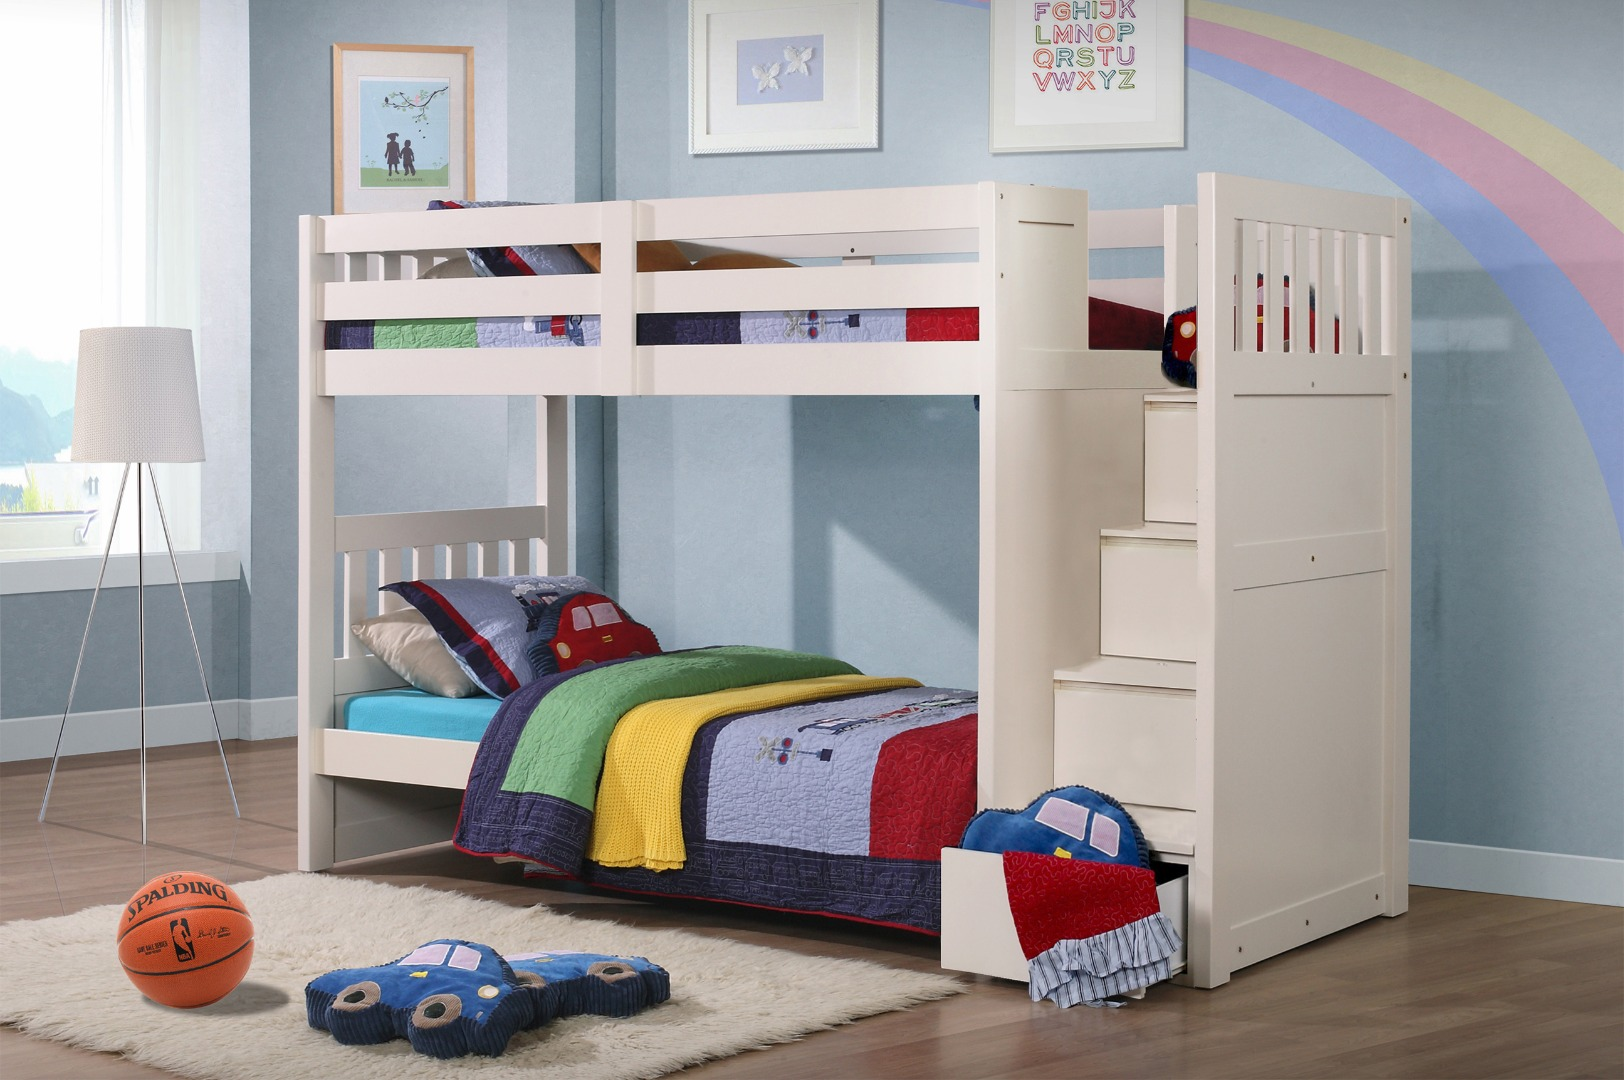 Best childrens bunk beds ... bunk bed stairs bed with stairs for kids o enigh loft kid boxhydt